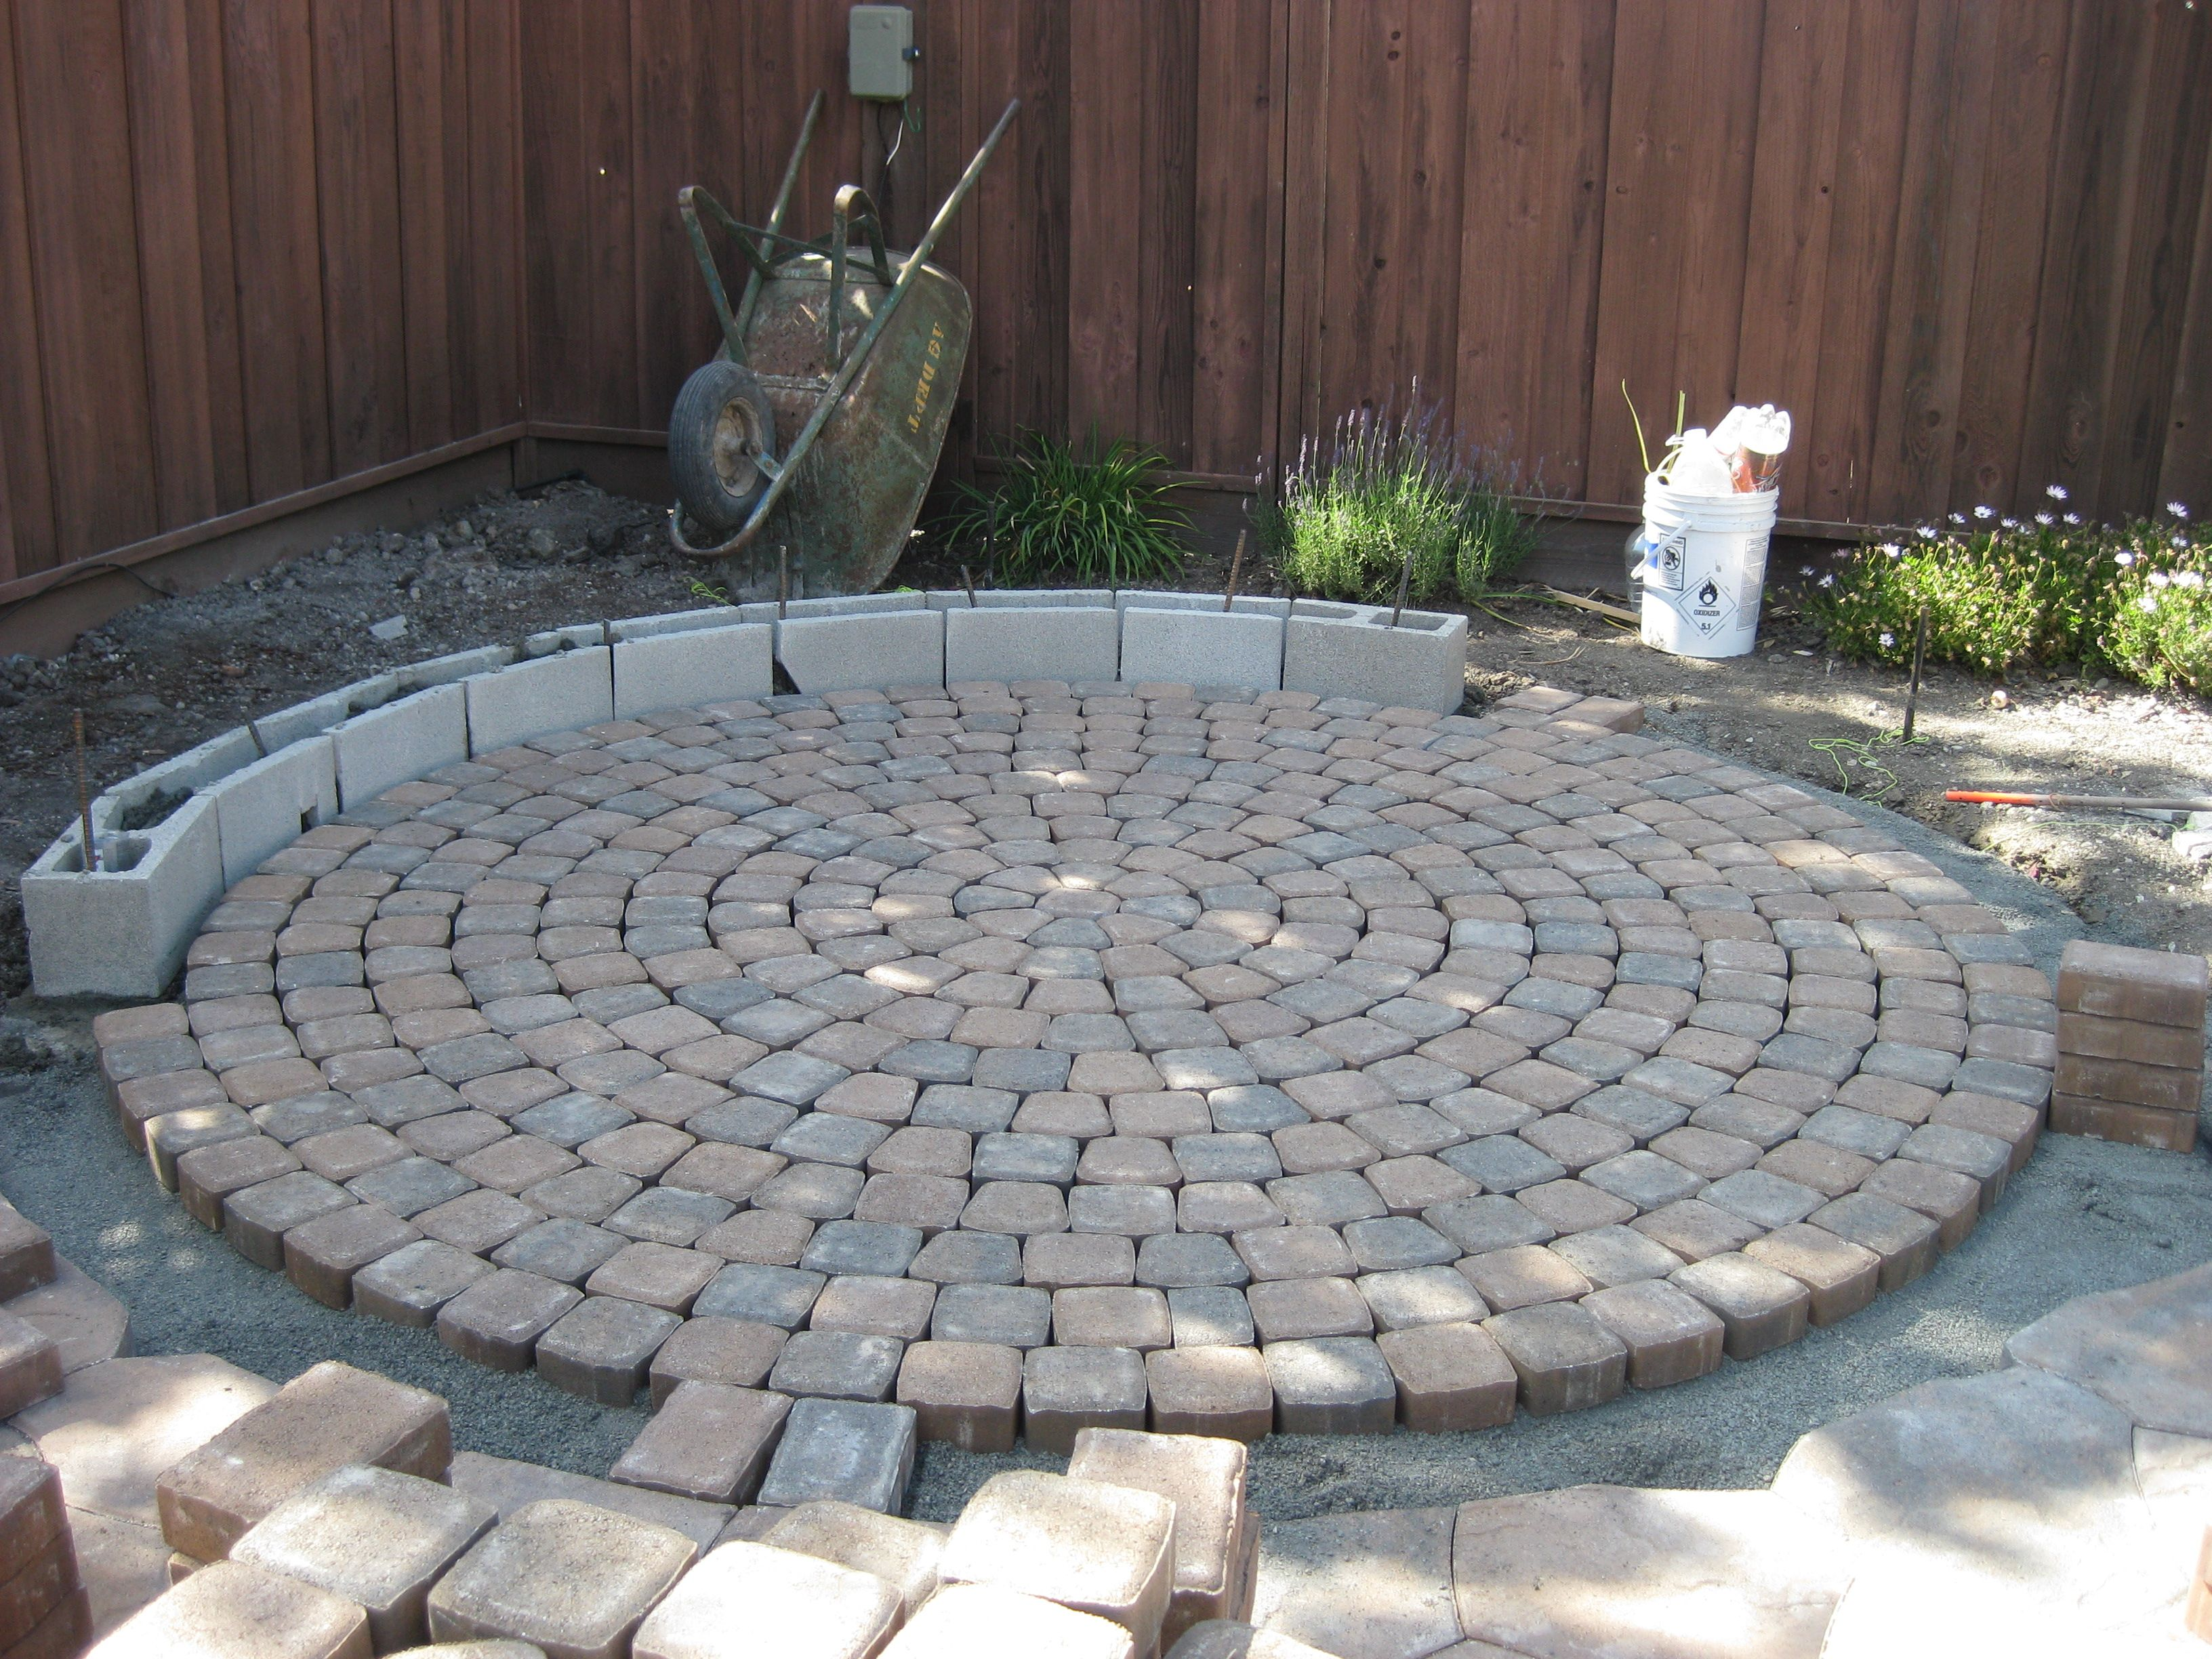 Hairy Round Stepping Stones Home Depot Round Stepping Stones At Home Depot Home Design Ideas Round Stepping Stones Images Landscaping Round Stepping Stones Wickes houzz-03 Round Stepping Stones